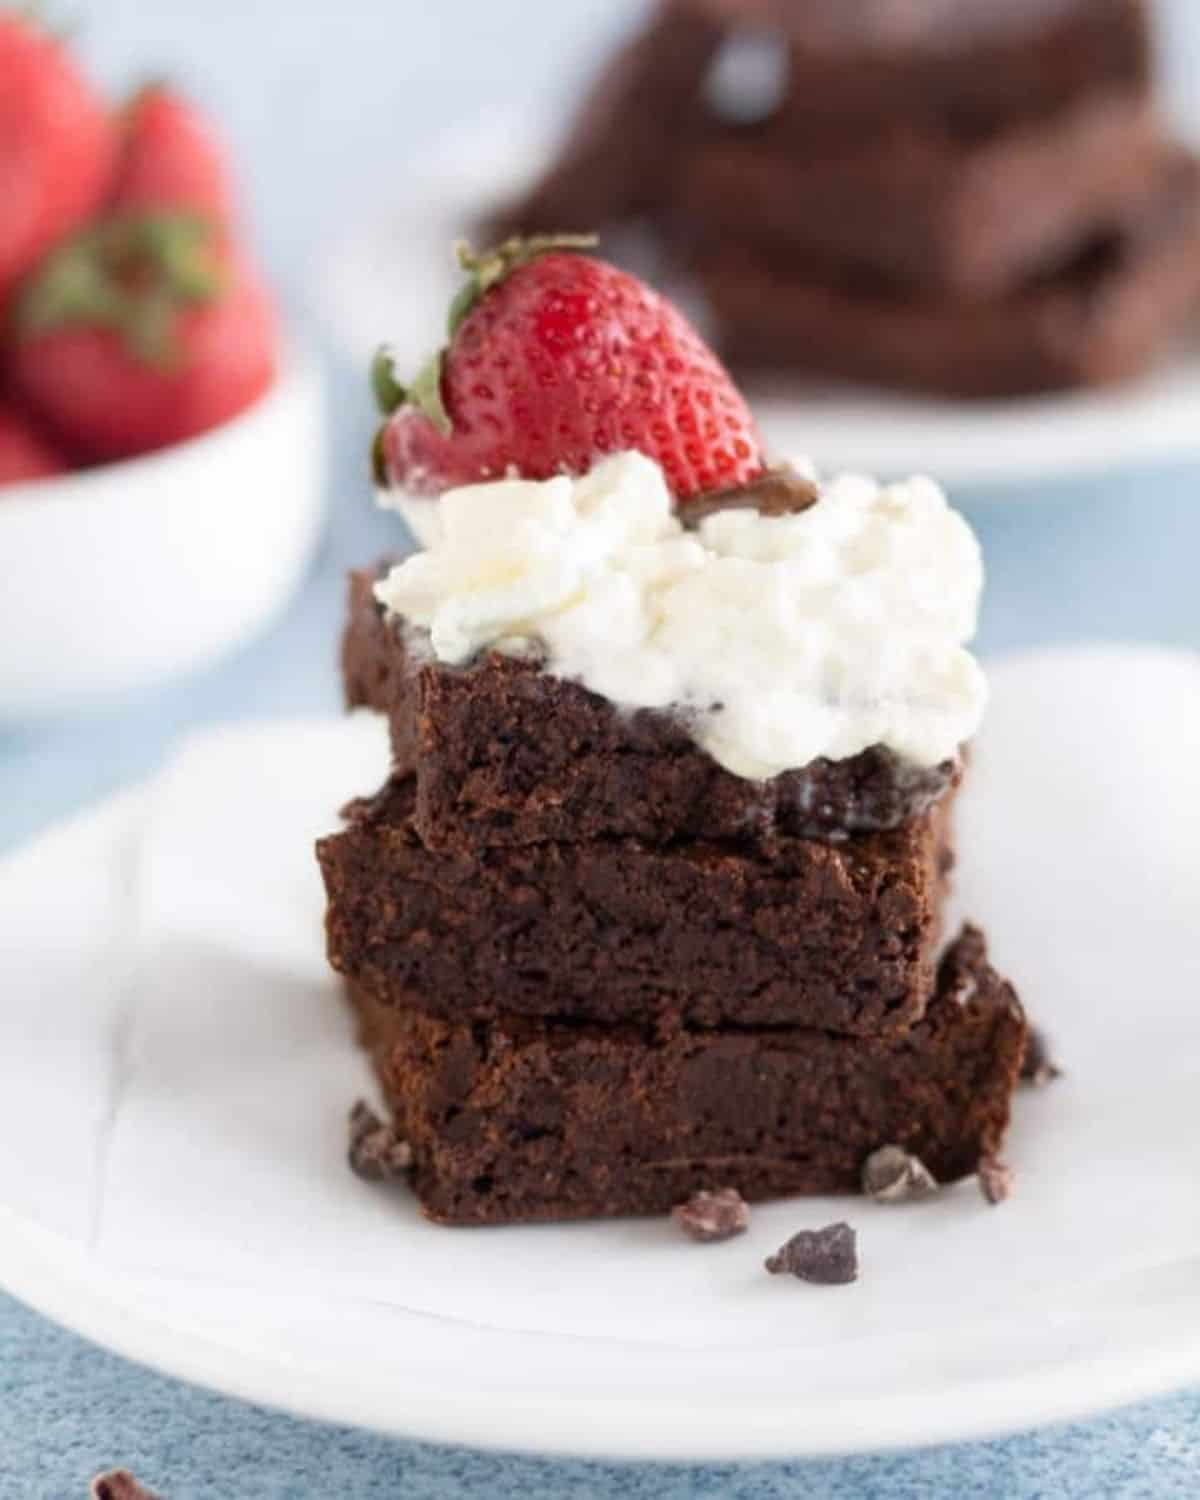 brownies stacked on white plate with cream and strawberries